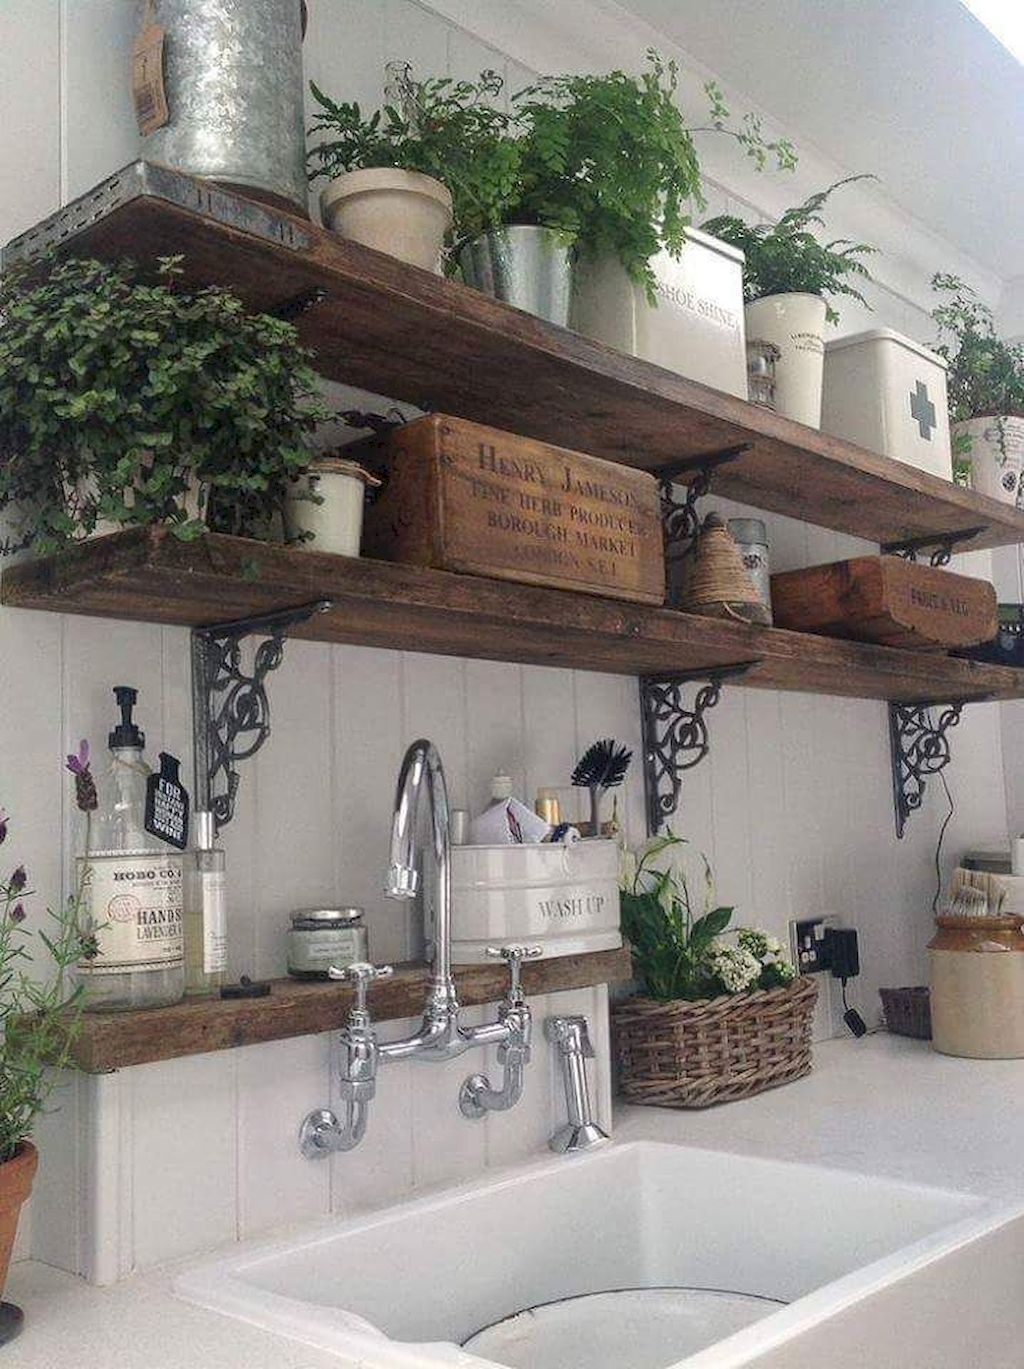 60 Stunning French Country Kitchen Decor Ideas – redecorationroom